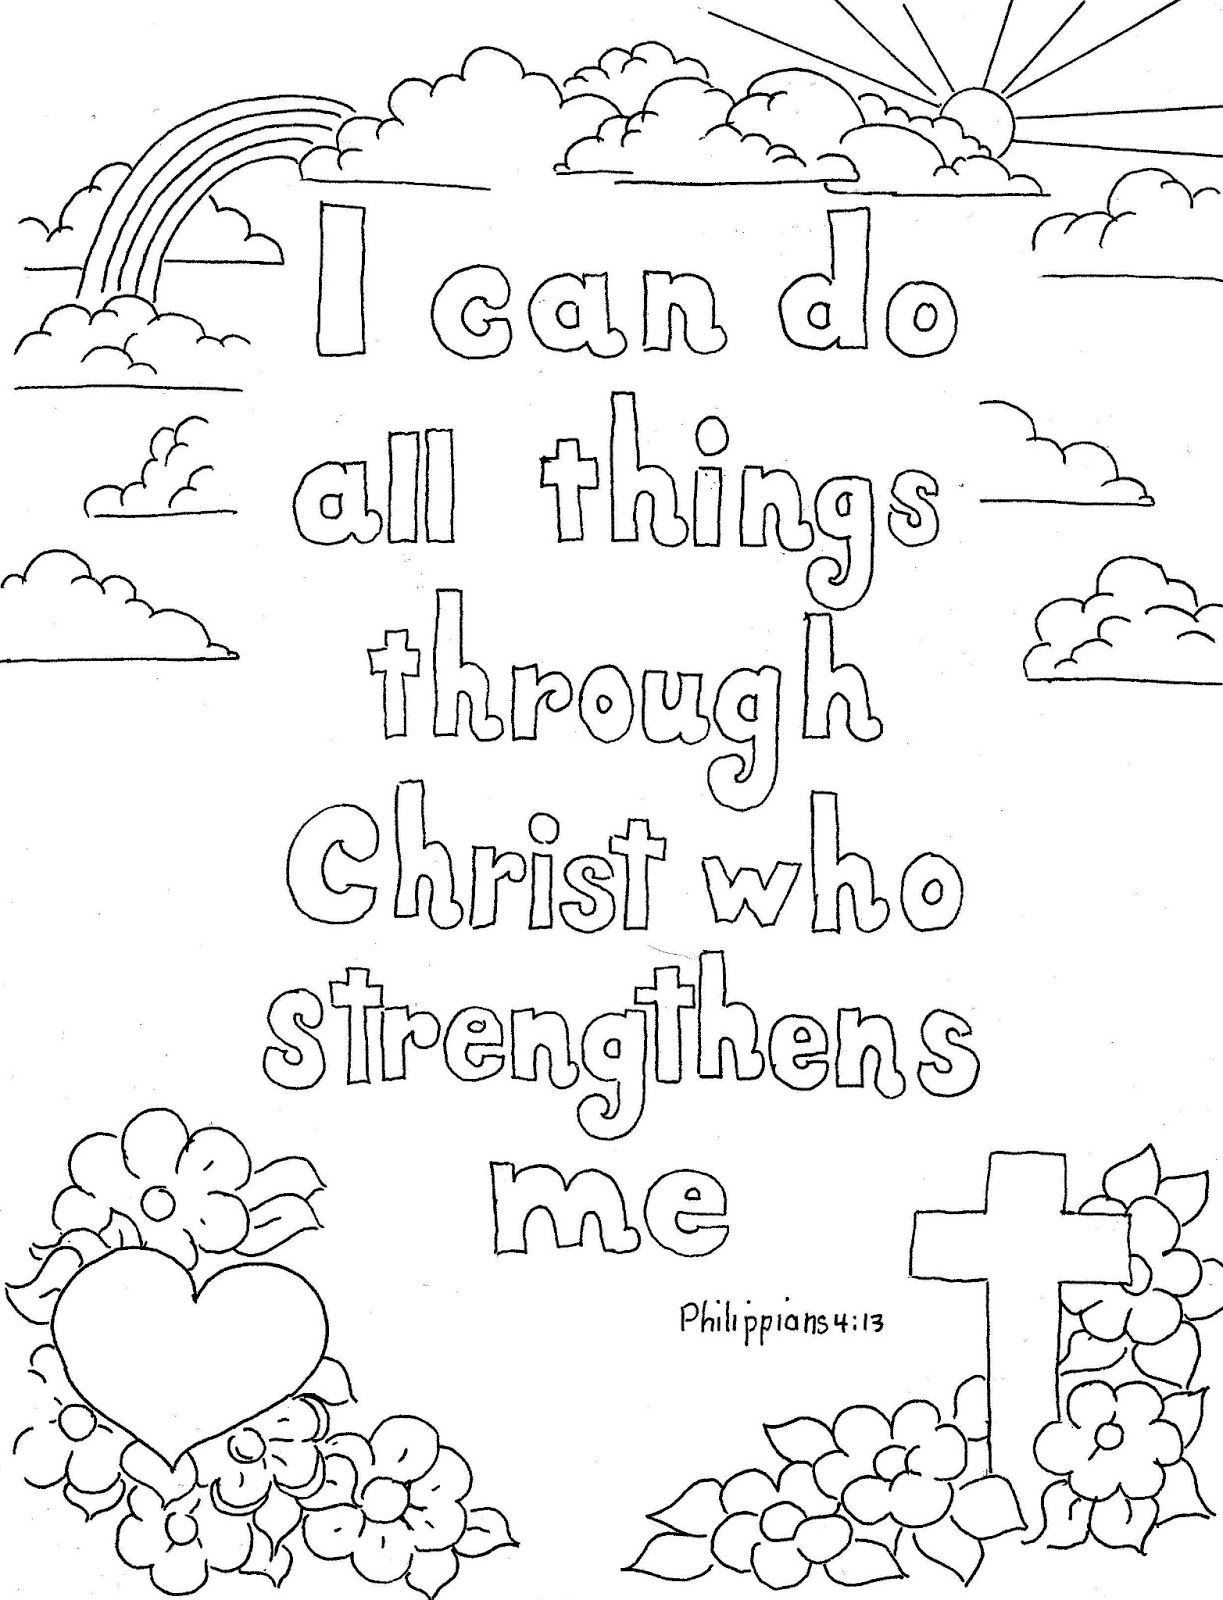 Coloring Pages For Kids By Mr Adron Philippians 413 Print And Color Page More At The Blog Coloringpagesbymradronblogspot